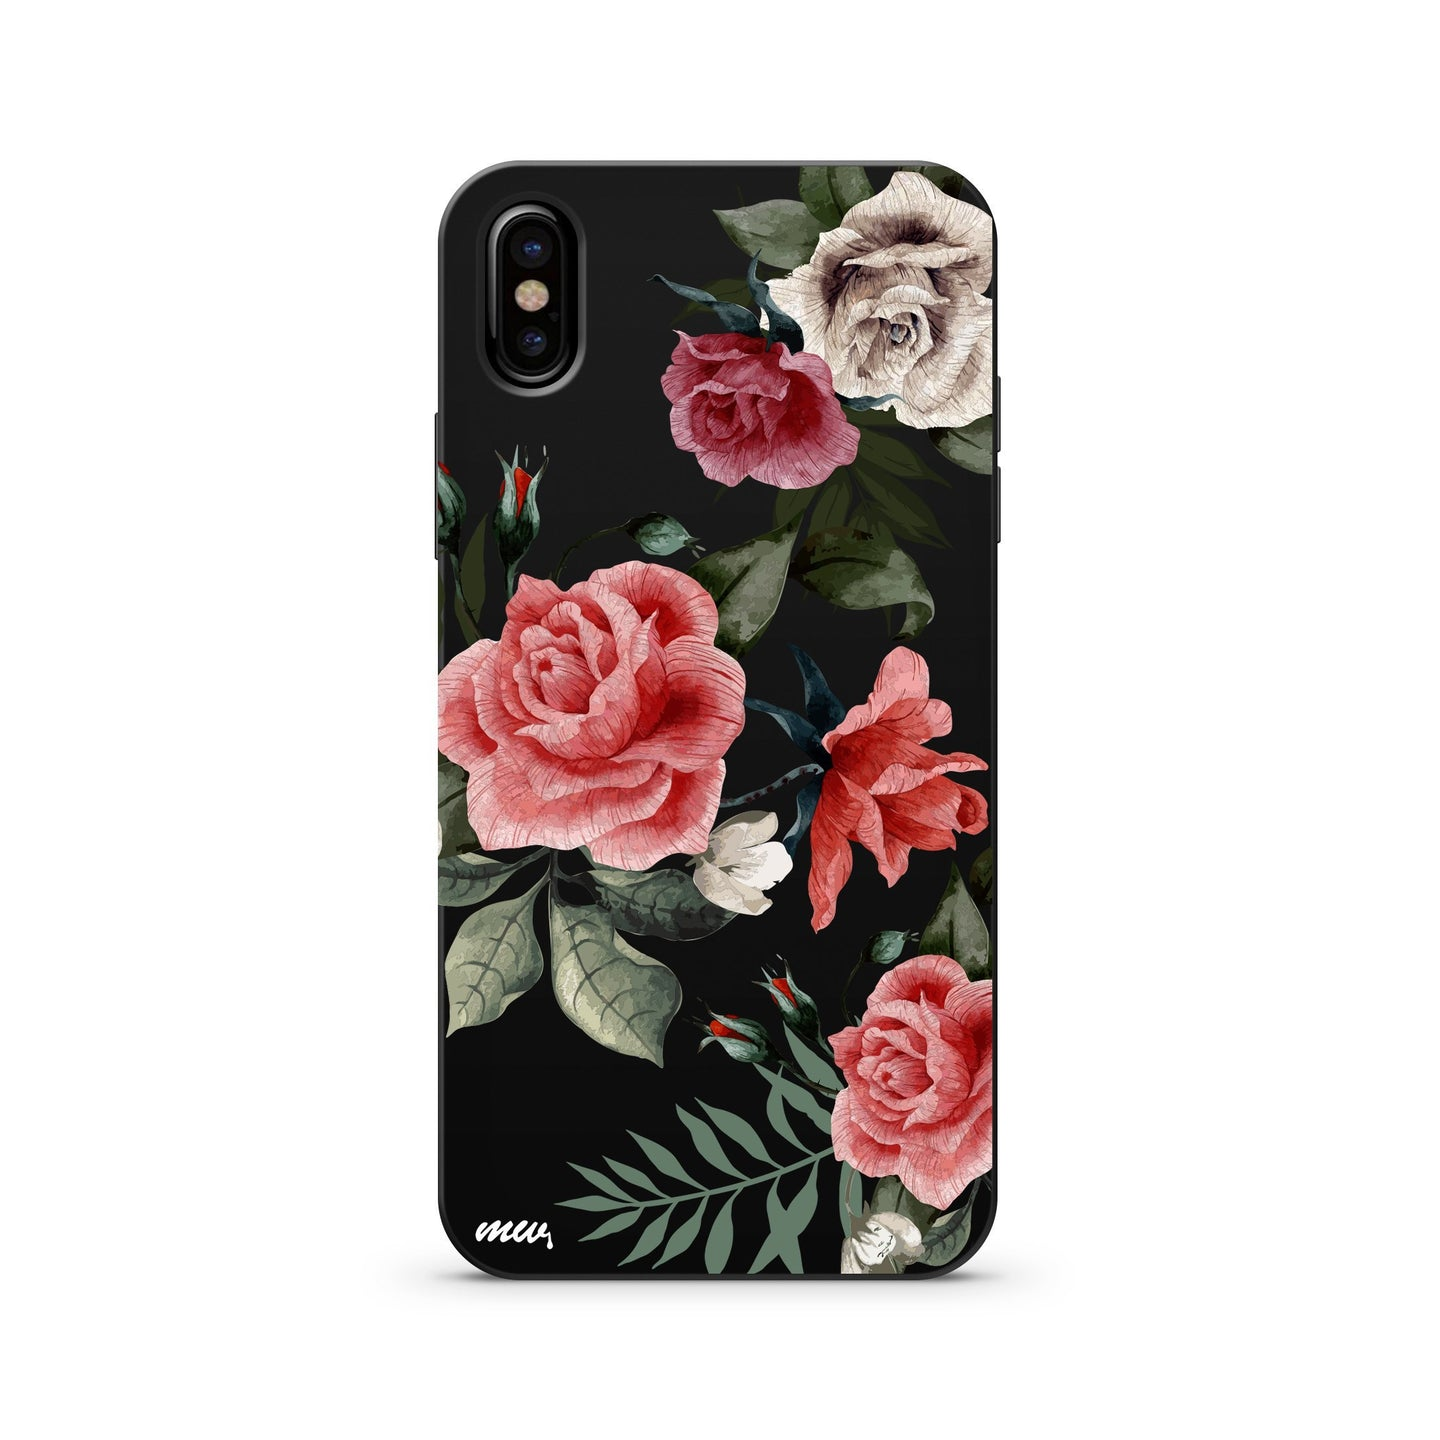 Black Wood Printed iPhone Case / Samsung Case Phone Cover - Petals